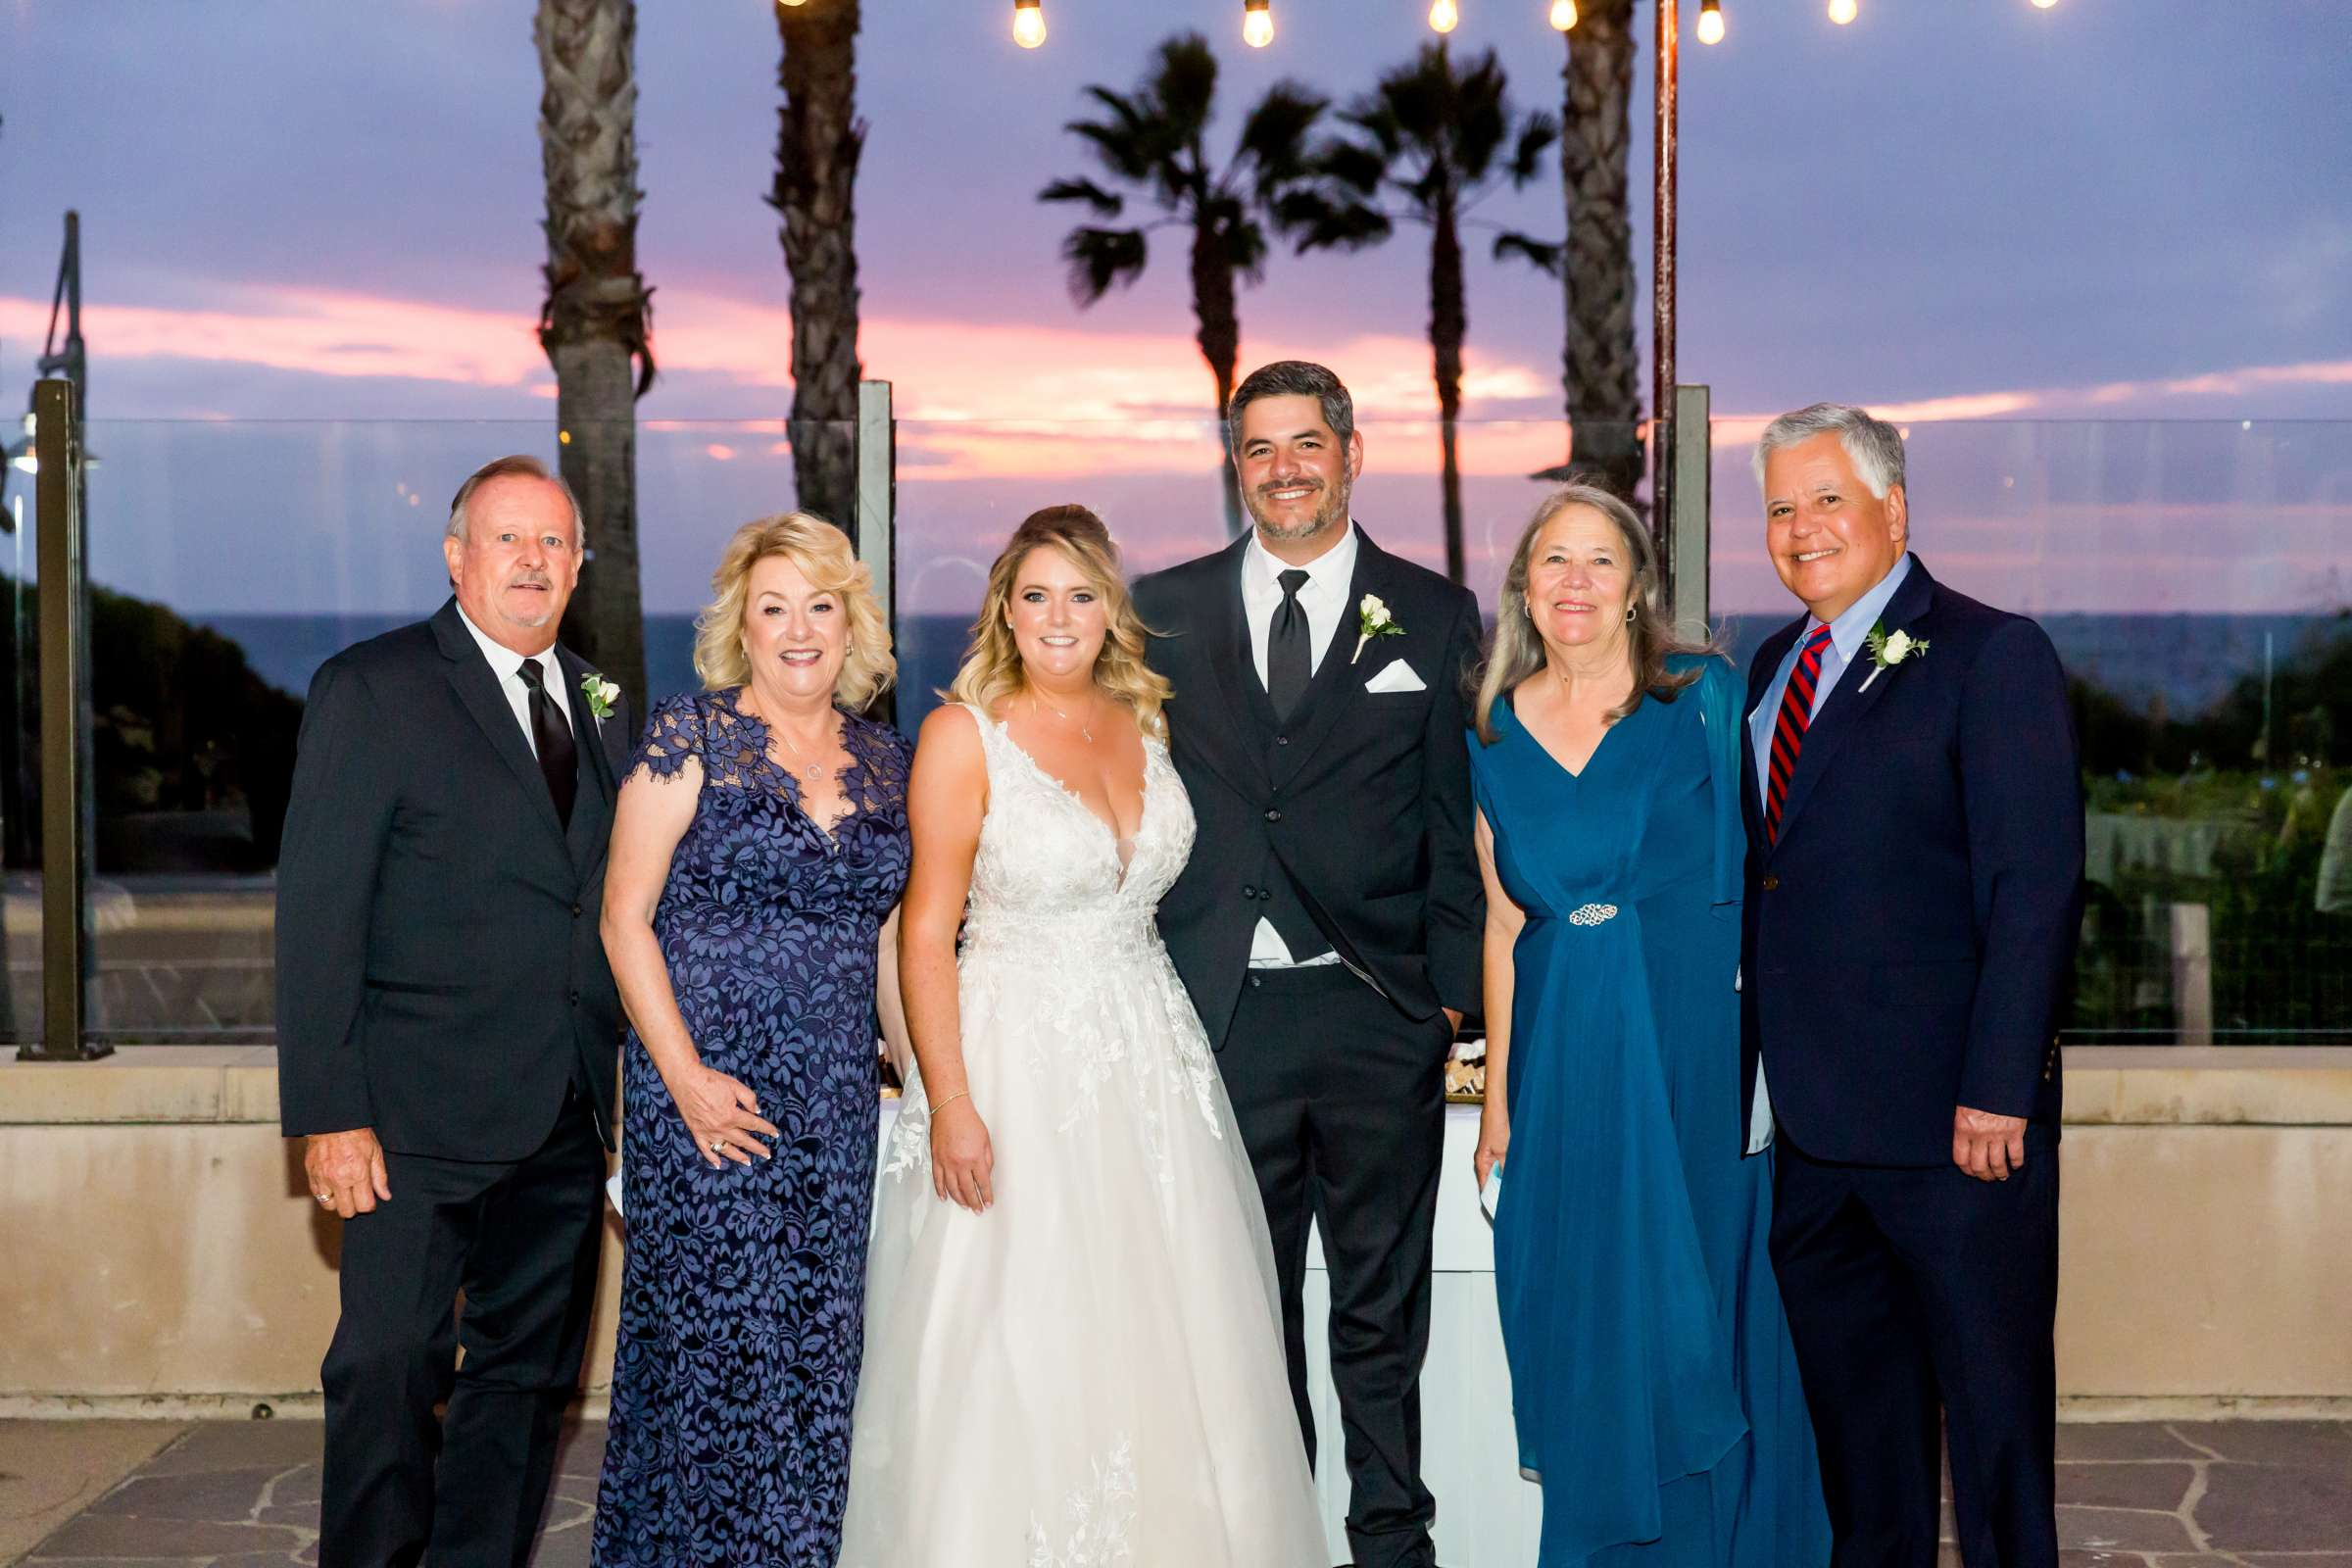 Cape Rey Carlsbad, A Hilton Resort Wedding, Michelle and Justin Wedding Photo #84 by True Photography